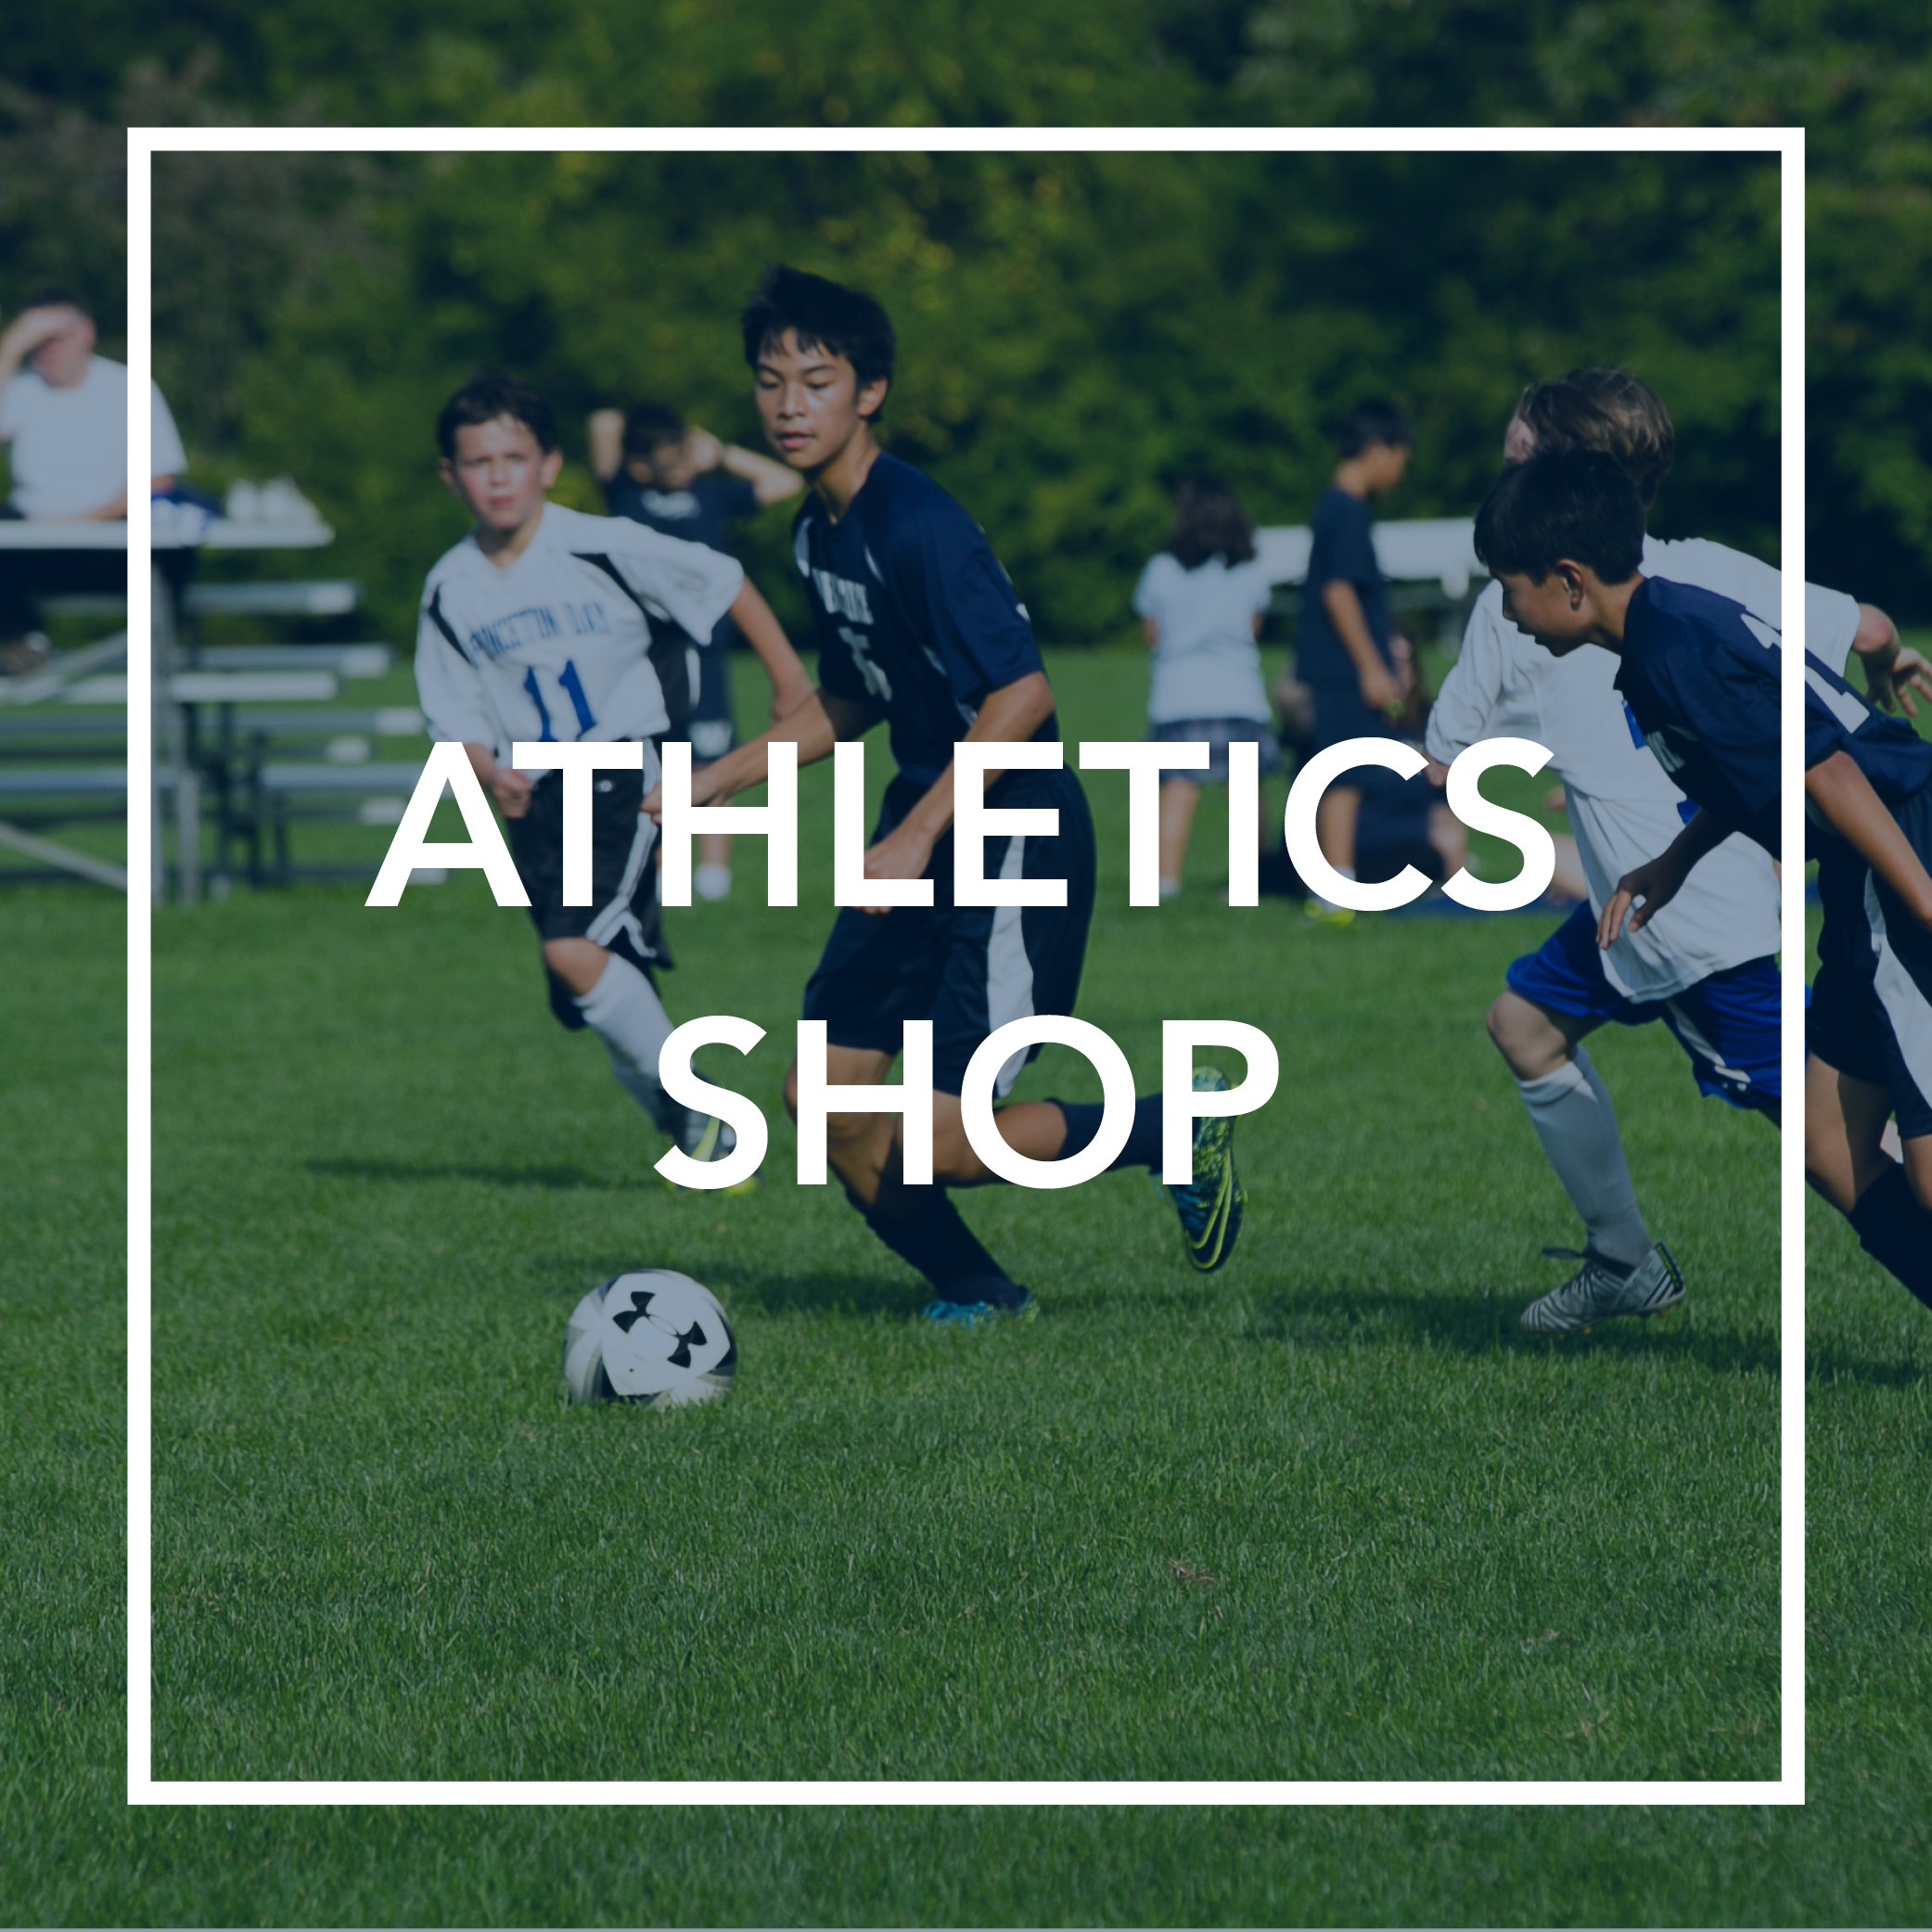 athletics shop image.jpg